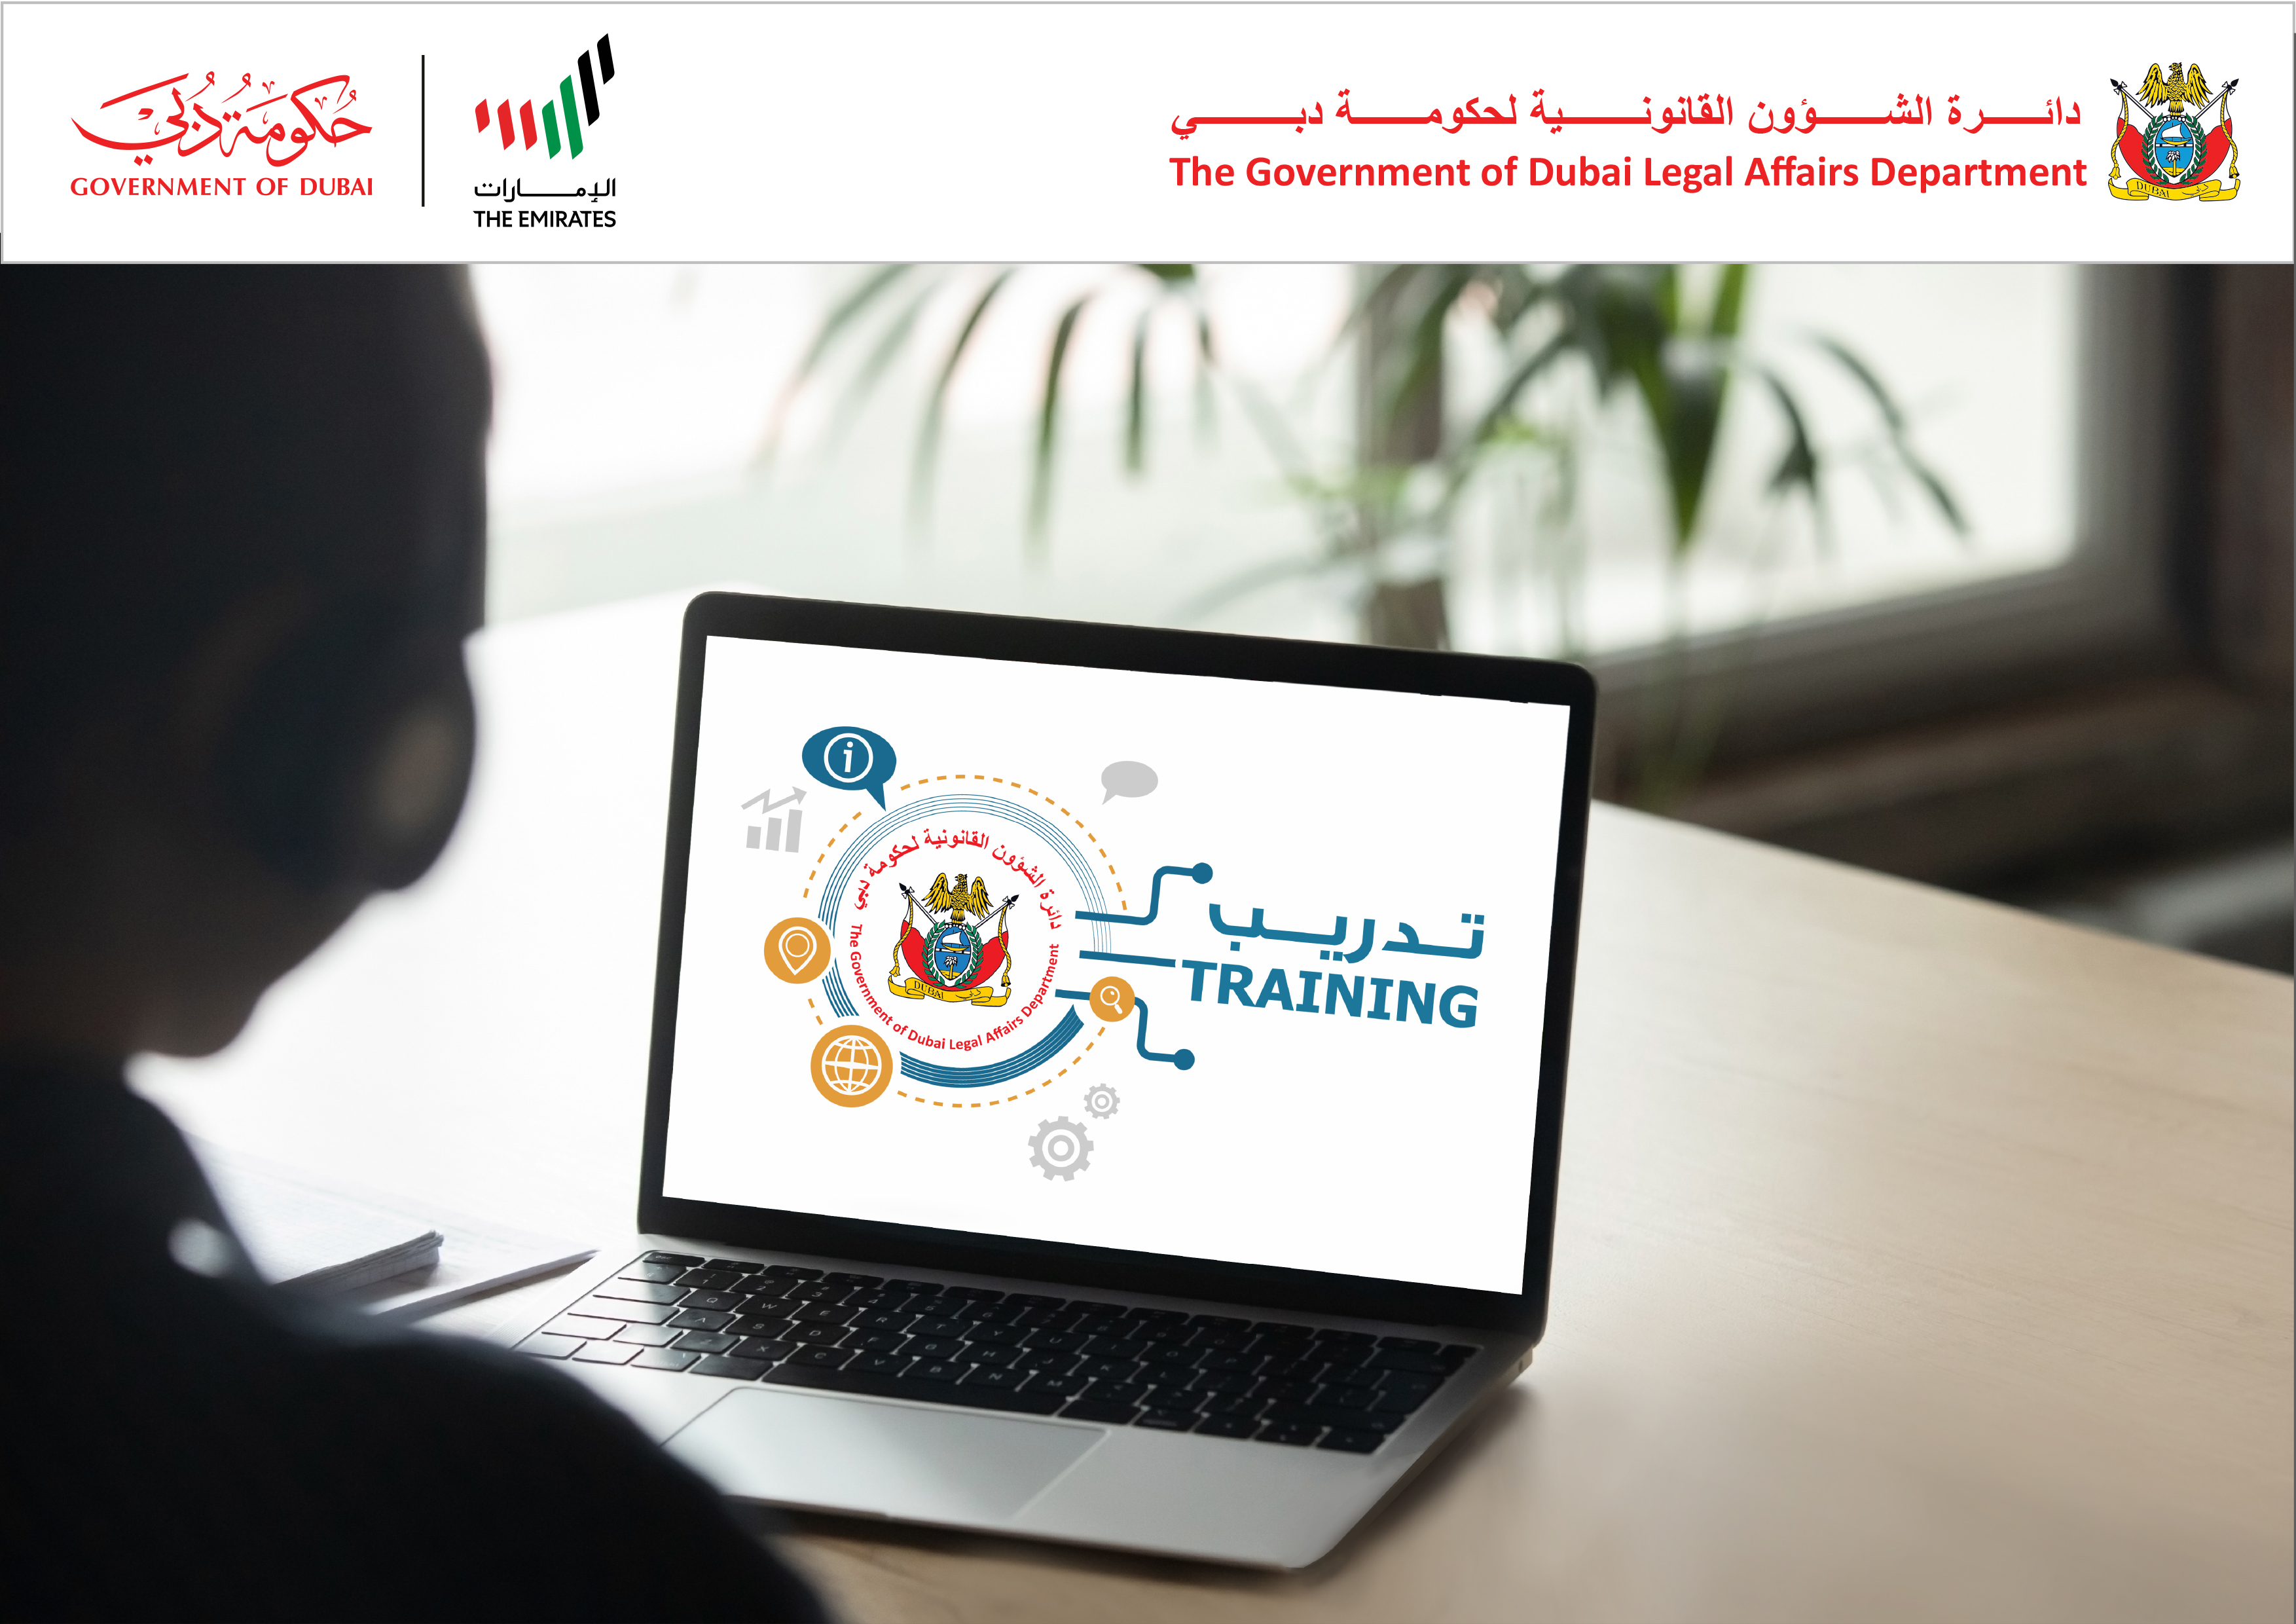 The Government of Dubai Legal Affairs Department Organises Remote Training Courses for Its Employees